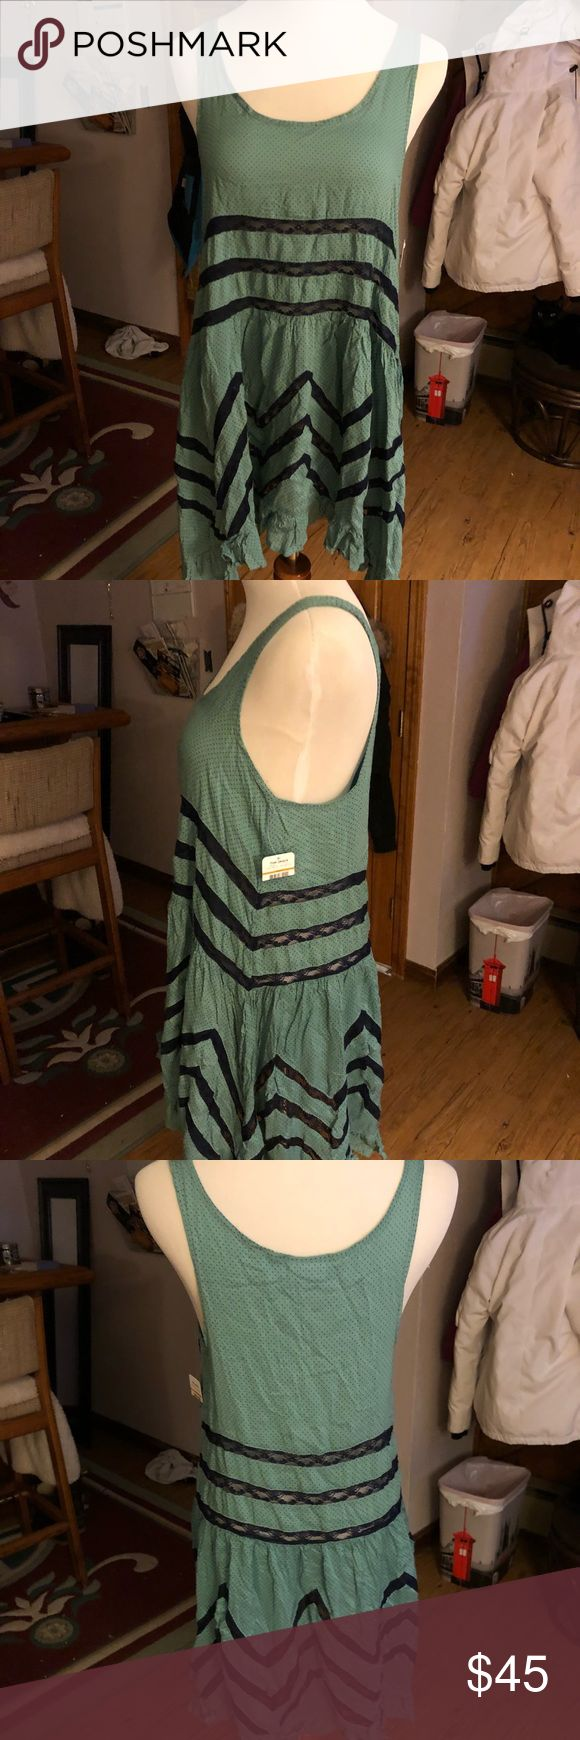 Free People • NWT Turquoise Blue Trapeze Slip NWT free people turquoise blue voile and lace trapeze slip size small. I discount bundles! Free People Dresses Asymmetrical